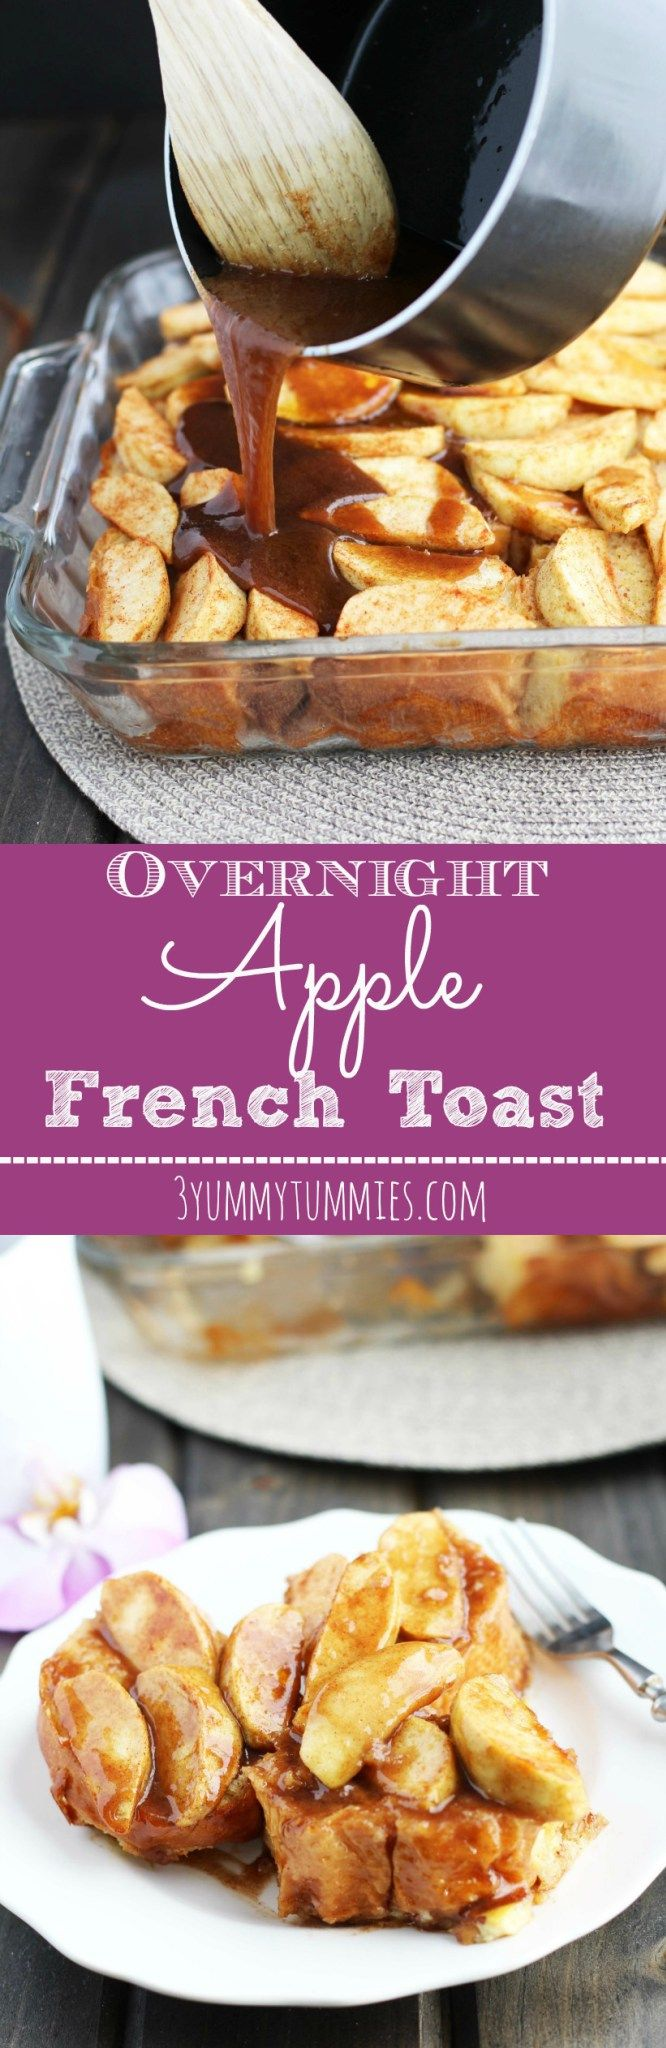 This yummy Apple French Toast Casserole is made the night before and topped with a warm, cinnamon sauce.